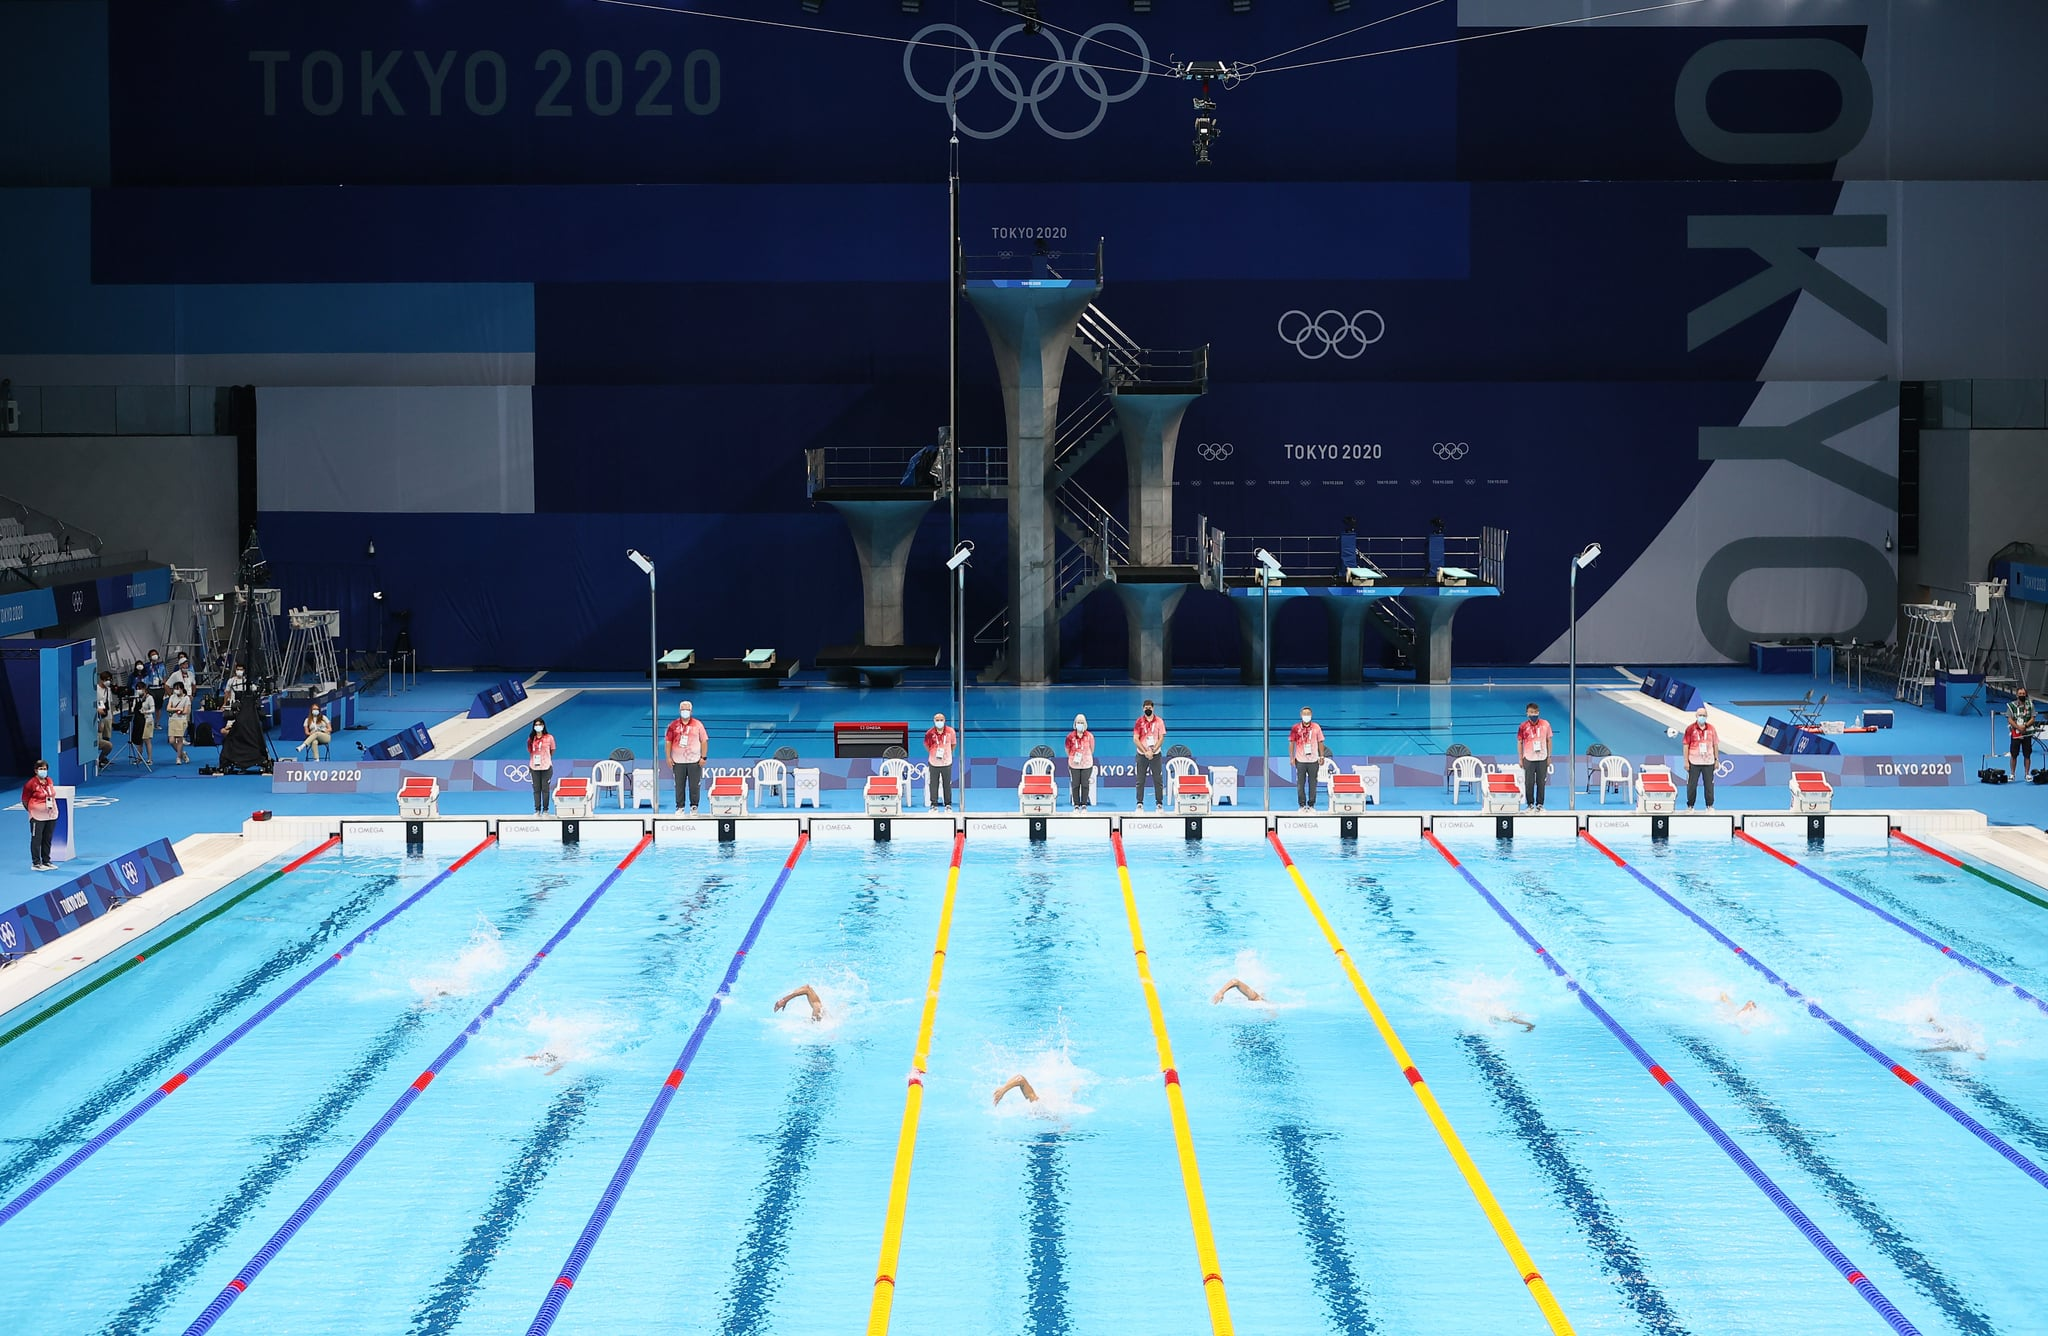 TOKYO, JAPAN - JULY 24: General view during heat two of the Men's 400m Freestyle on day one of the Tokyo 2020 Olympic Games at Tokyo Aquatics Centre on July 24, 2021 in Tokyo, Japan. (Photo by Tom Pennington/Getty Images)